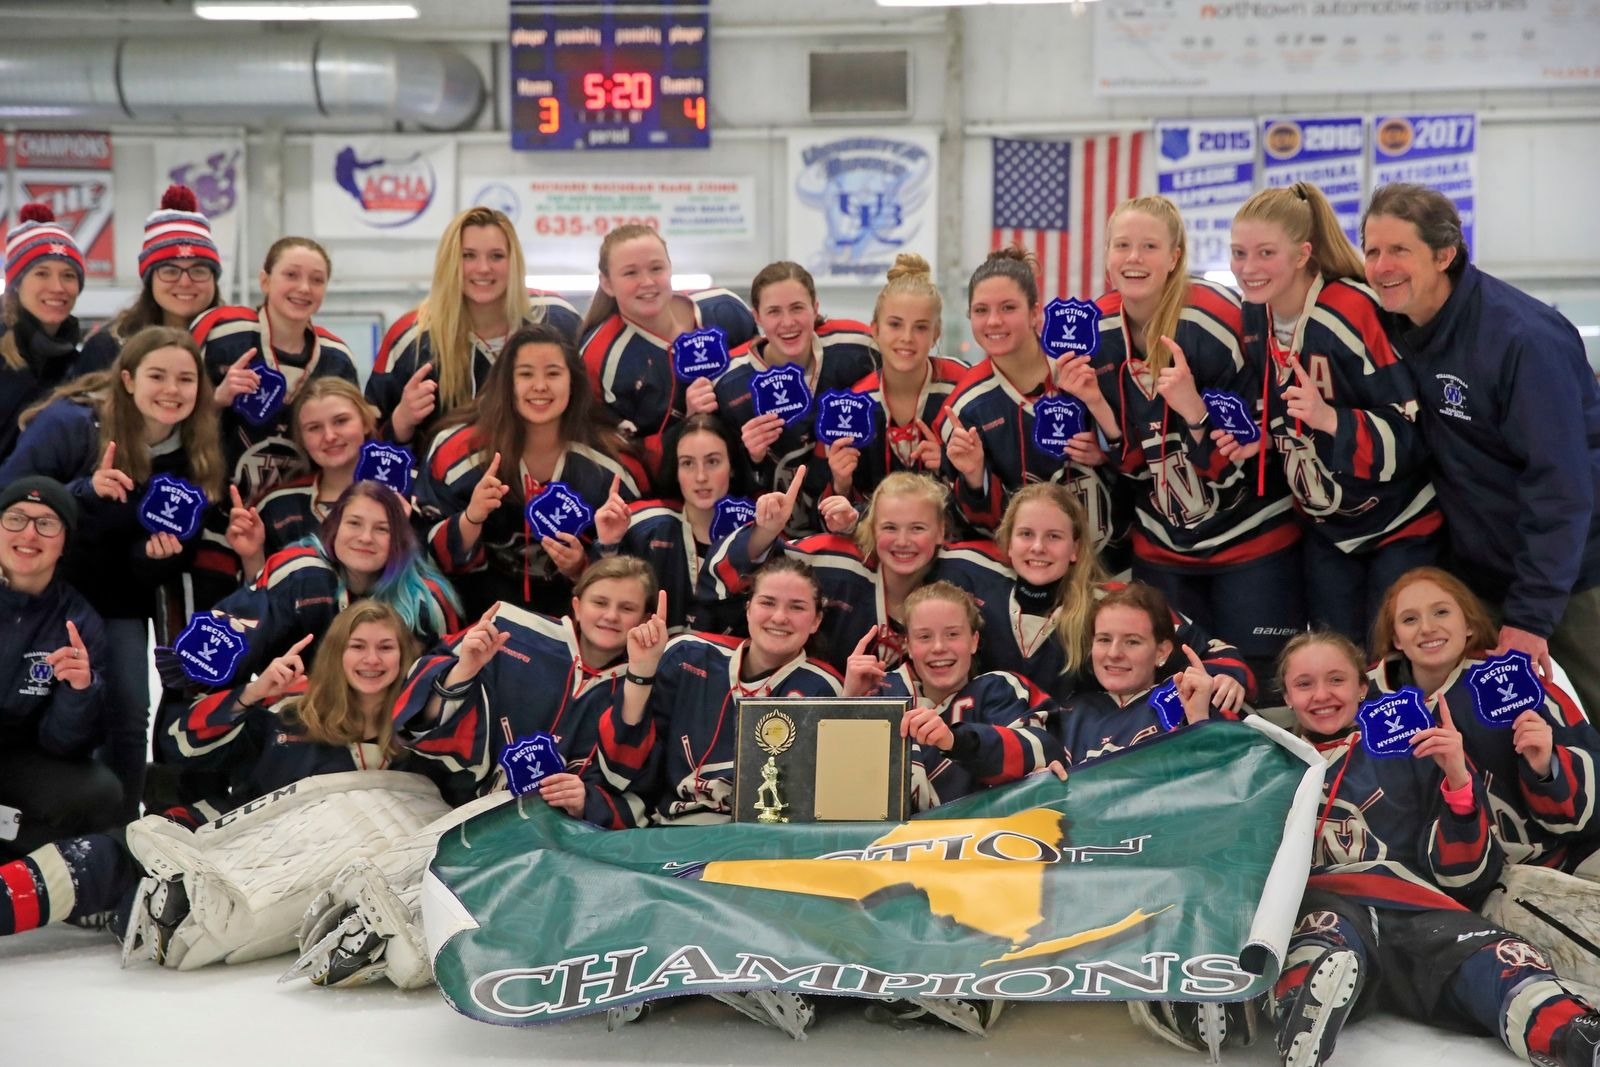 Williamsville celebrates a 4-3 overtime victory over Frontier/Lake Shore/Orchard Park (FLOP) for the Section VI girls ice hockey championship at the Northtown Center on Wednesday, Feb. 6, 2019.